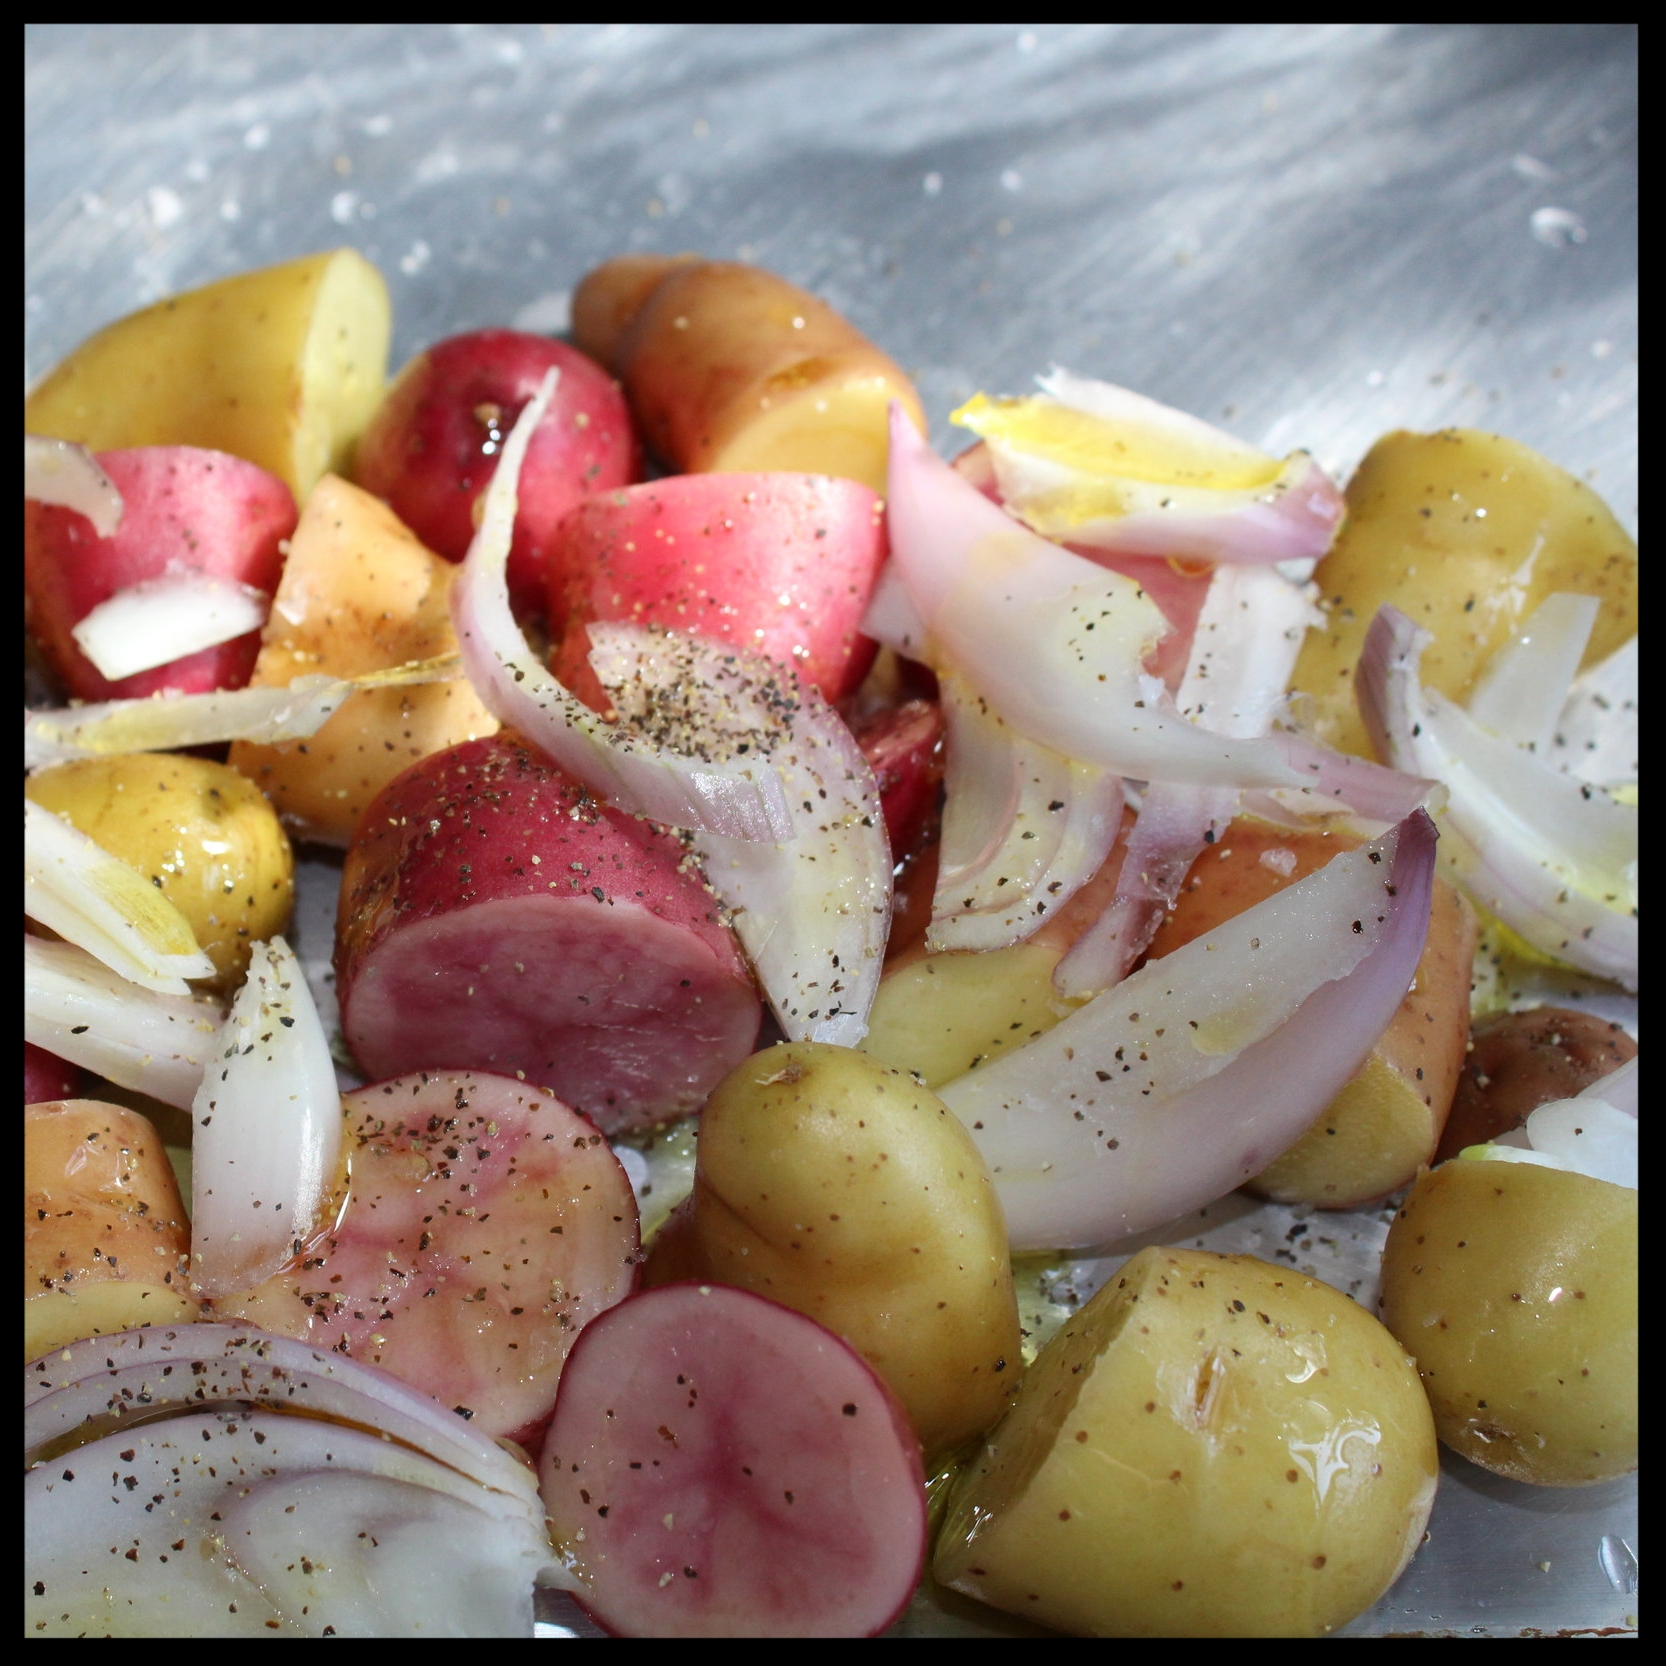 INGREDIENTS:   - 1/2 pound small potatoes/person - washed and cut into equal portions (I used a mix of pink, yellow, peewee)  - 1 large shallot, peeled and cut lengthwise into long strips  - 3-4 rainbow carrots/person - scrubbed, peeled, and cut lengthwise into equal sizes  - extra virgin olive oil  - salt and pepper to taste